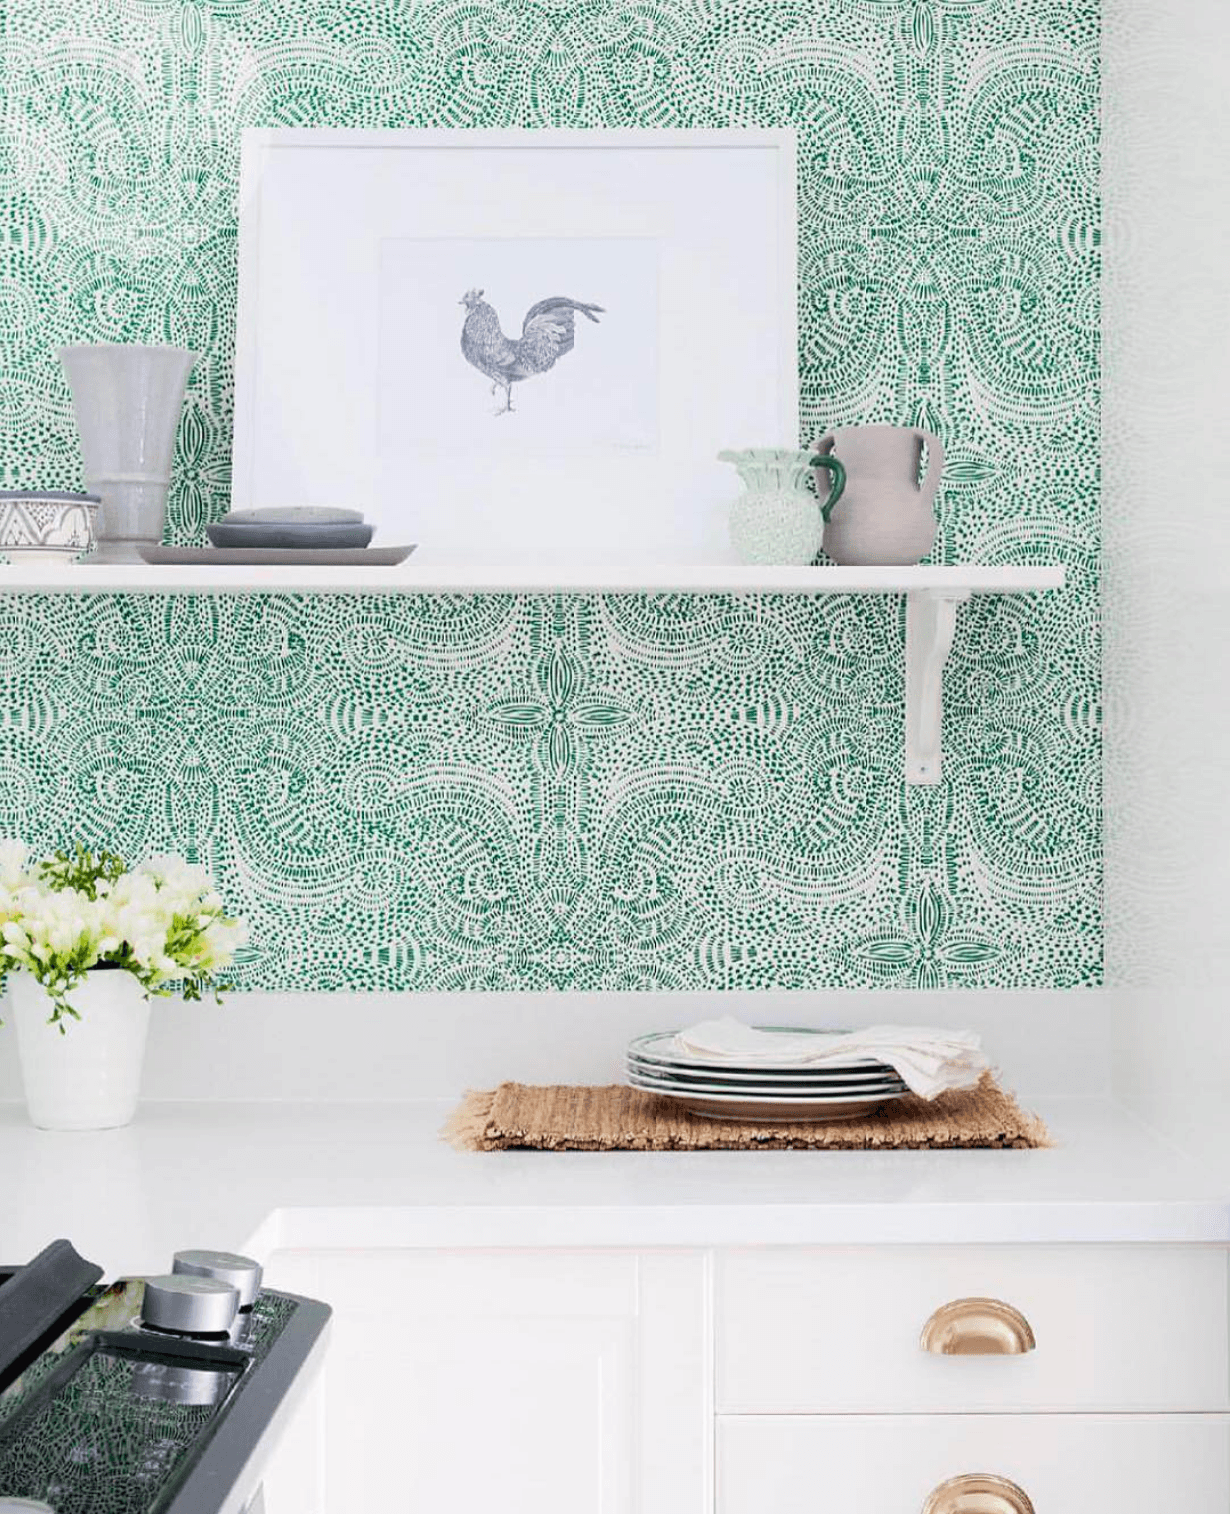 Our Favorite Patterns for the Kitchen | Andanza Green wallpaper | Laundry Studio | Hygge & West